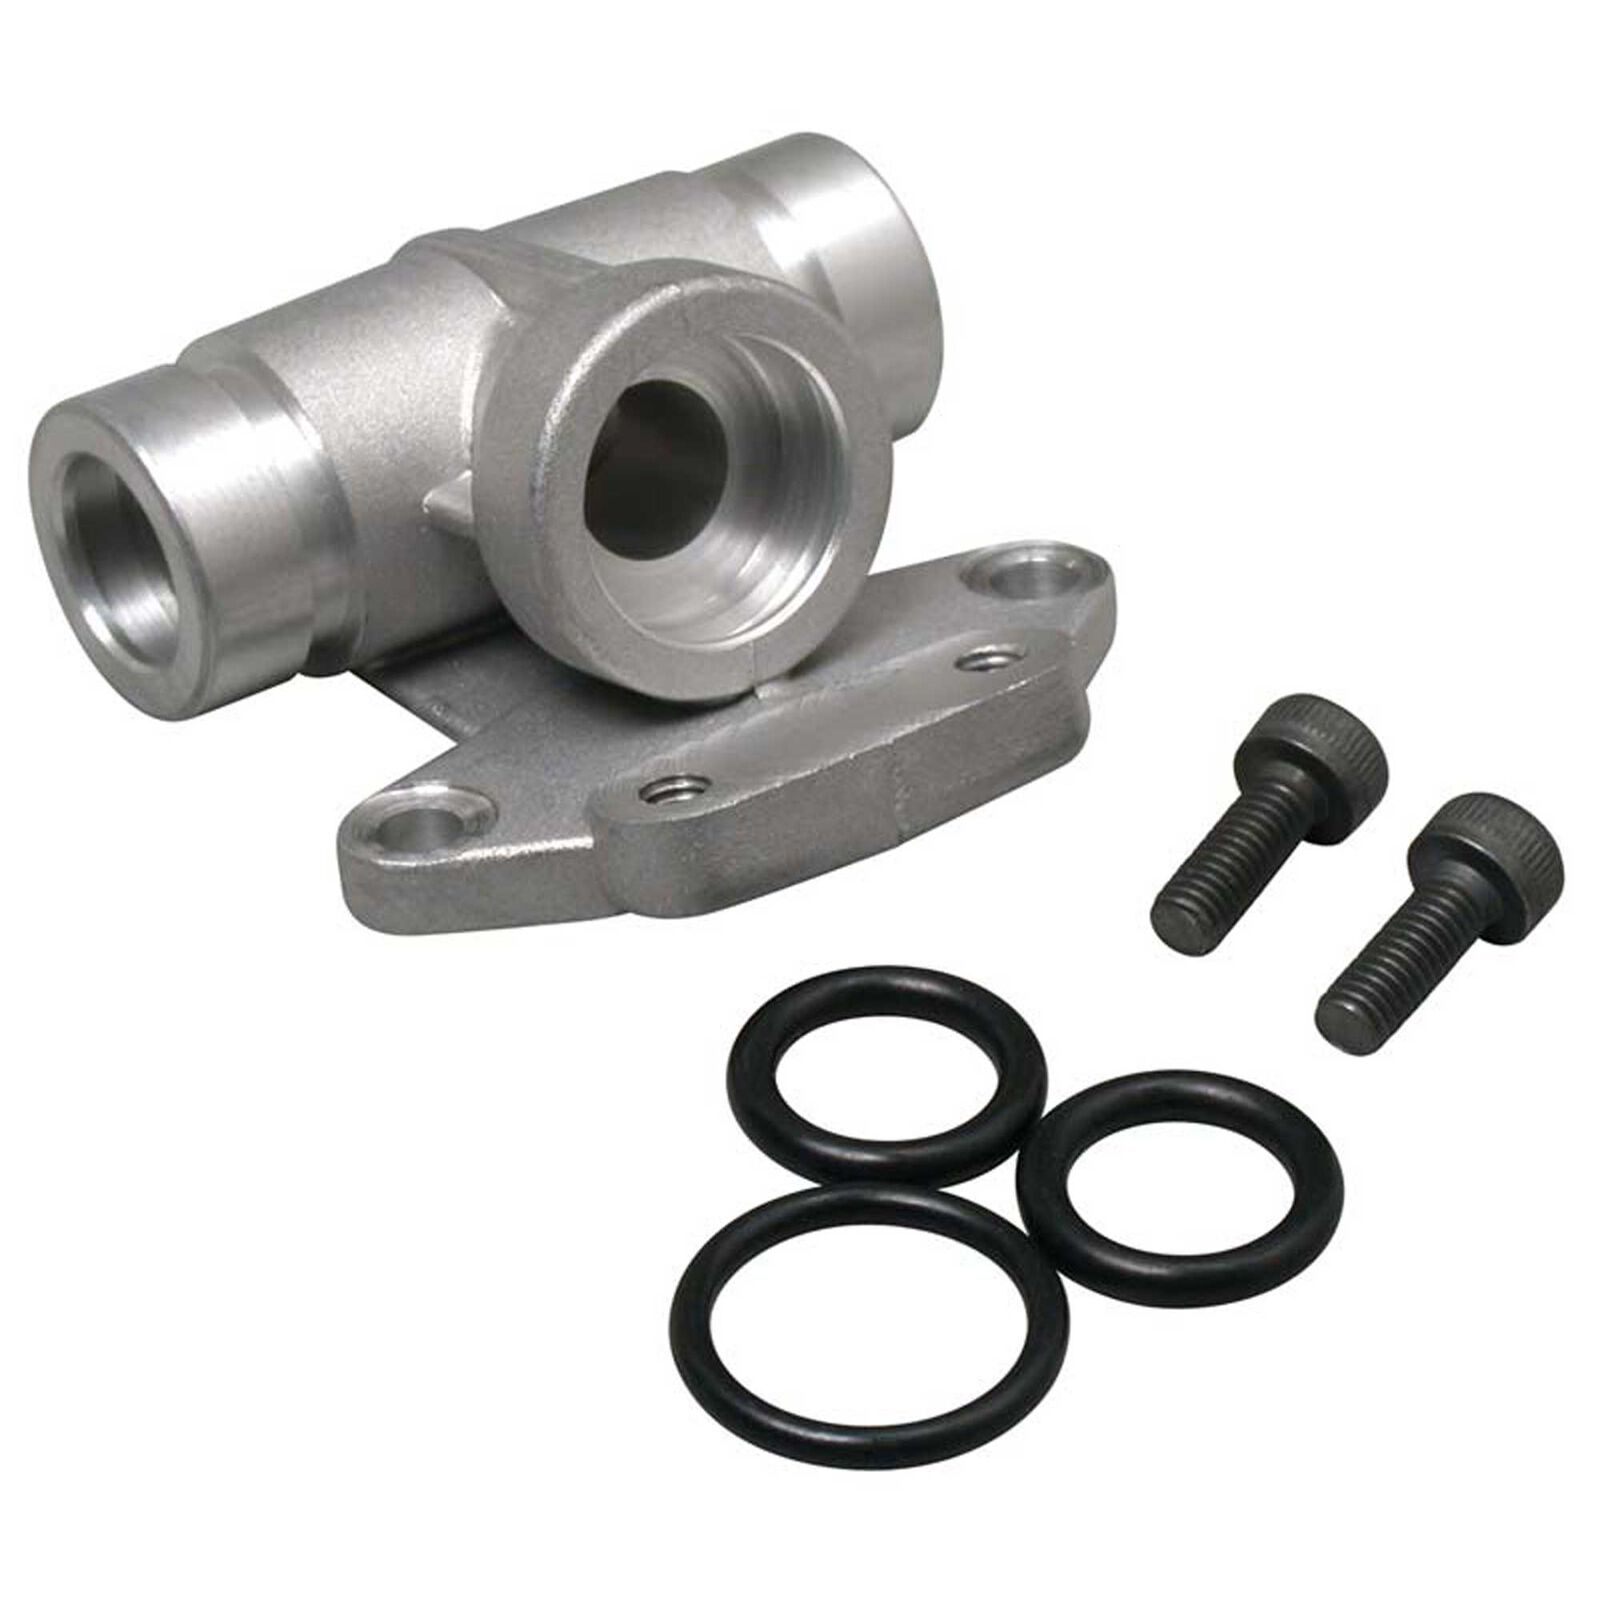 Intake Manifold Assembly: FT-120 and FT-160